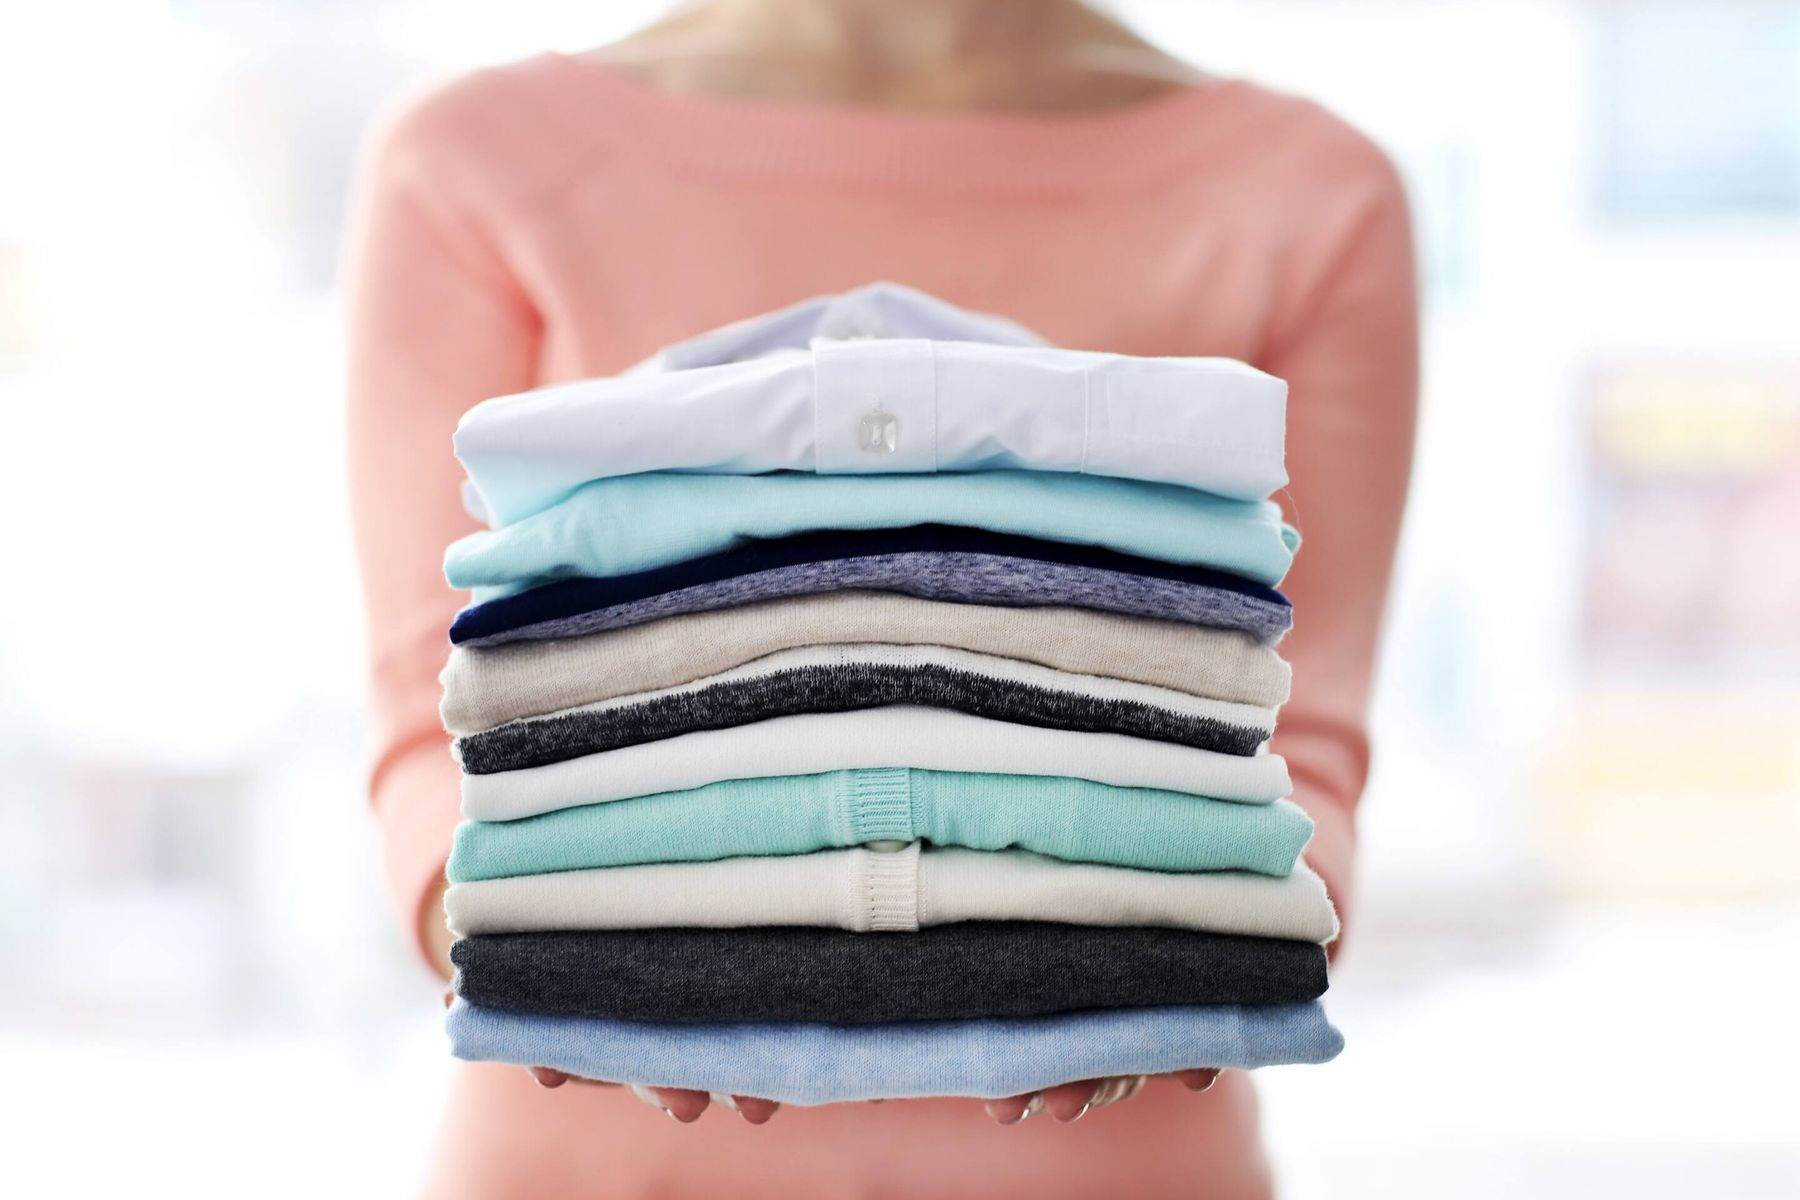 How to disinfect clothes